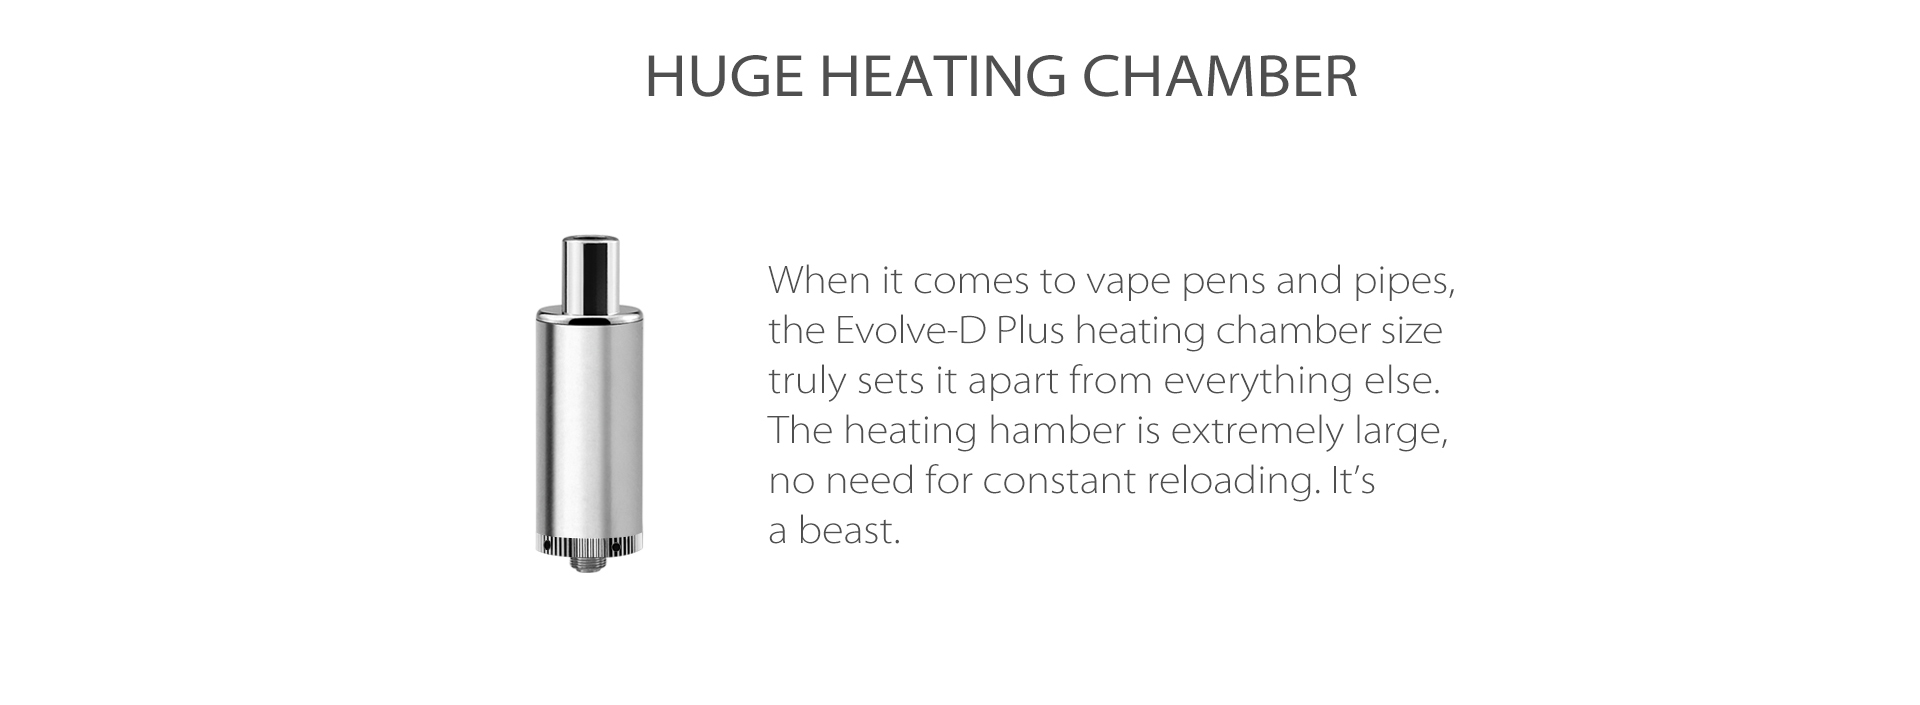 Yocan Evolve-D Plus vaporizer pen 2020 version has a bigger battery and a bigger herb chamber.